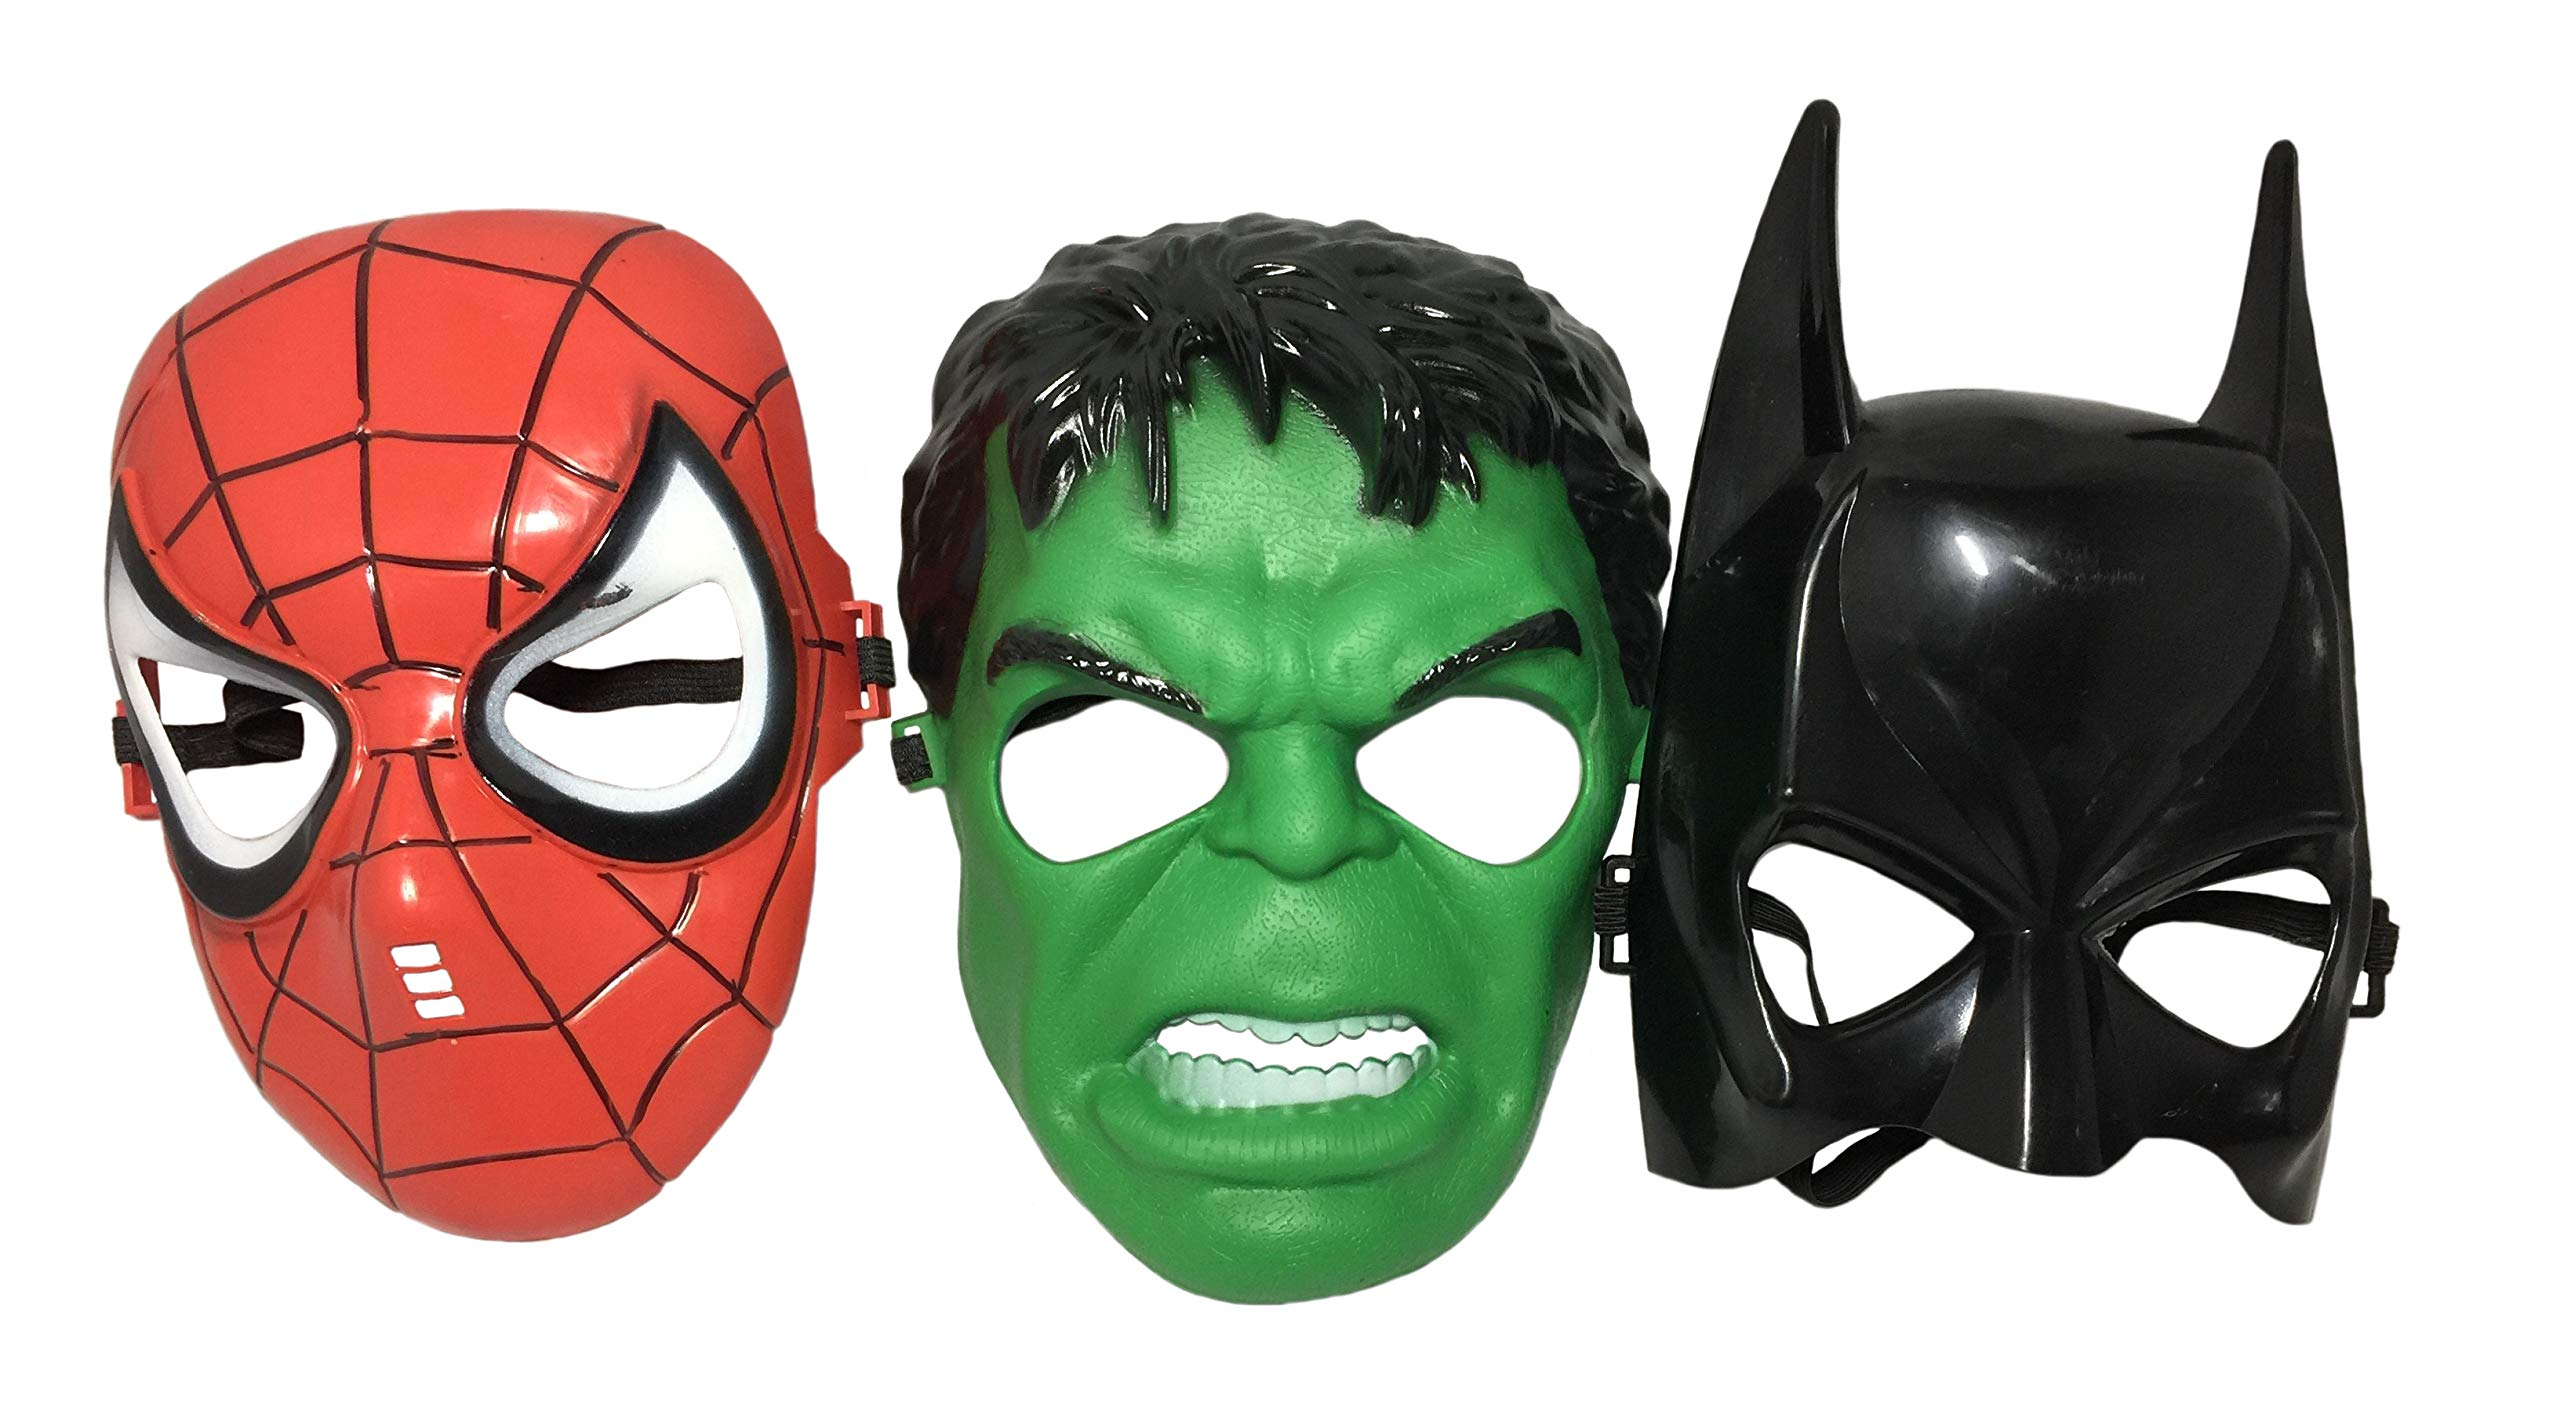 Seasons Merchandise Set of 3 Kids Masks - Spider-Man, Batman, Hulk